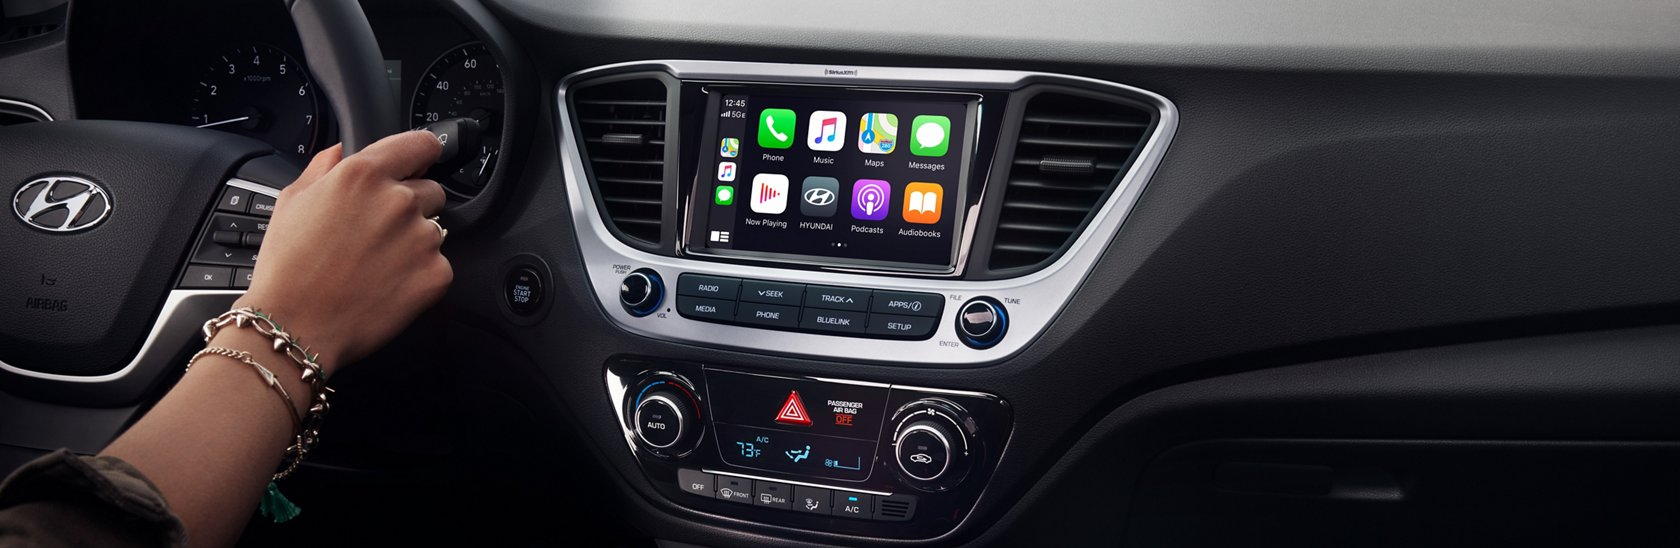 2021 Hyundai Accent Apple CarPlay and Android Auto